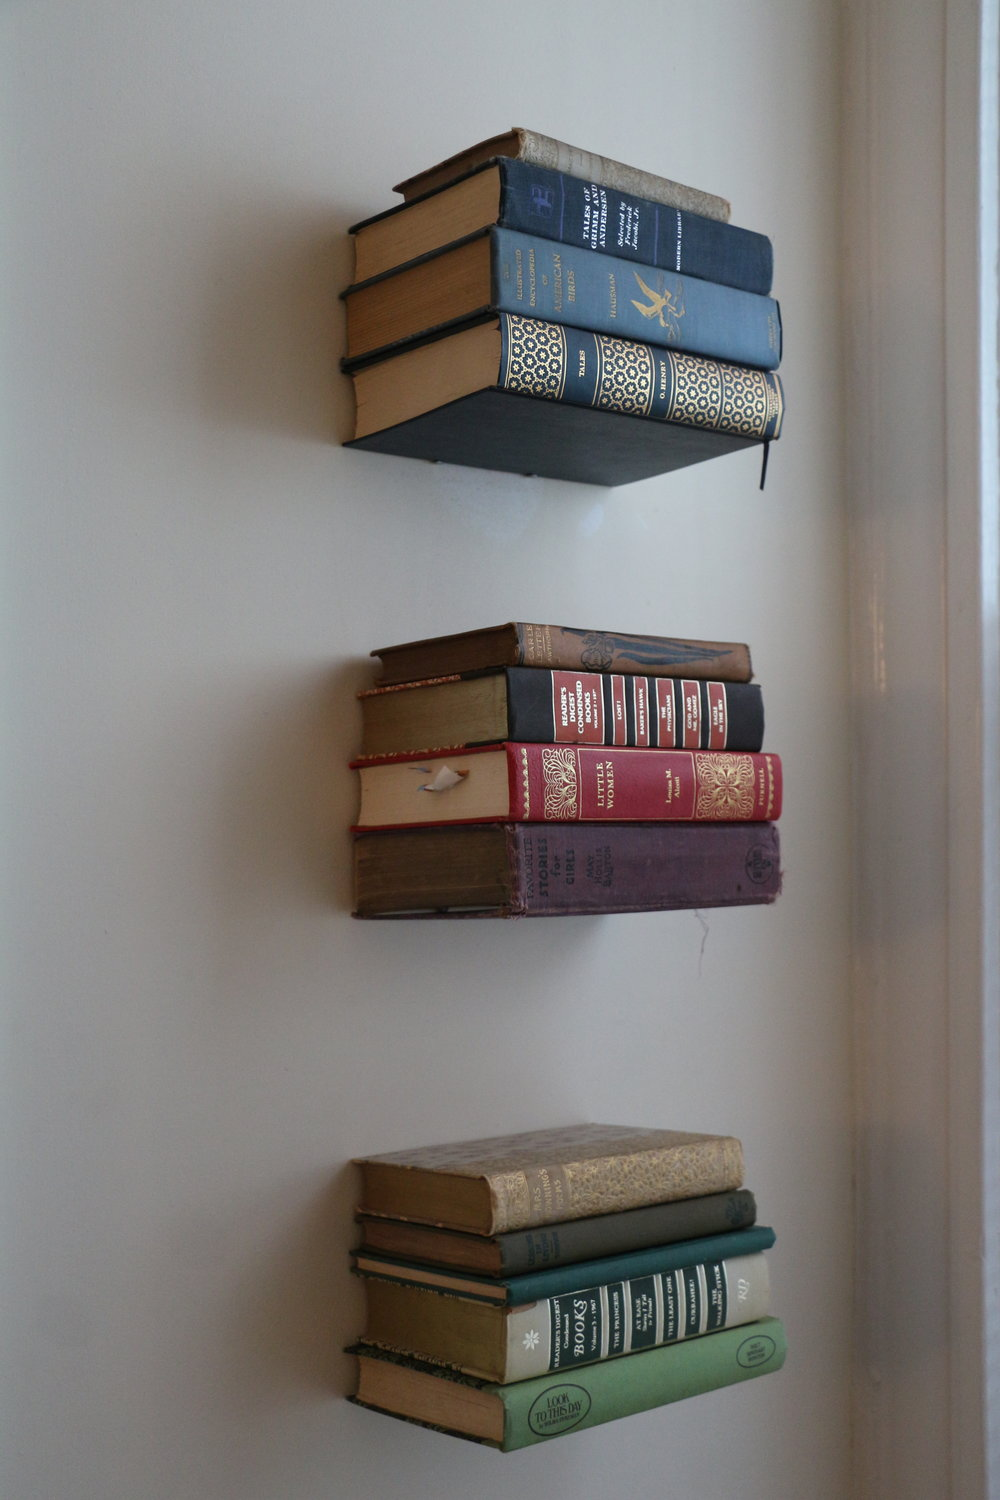 Invisible book shelves are my new favorite thing